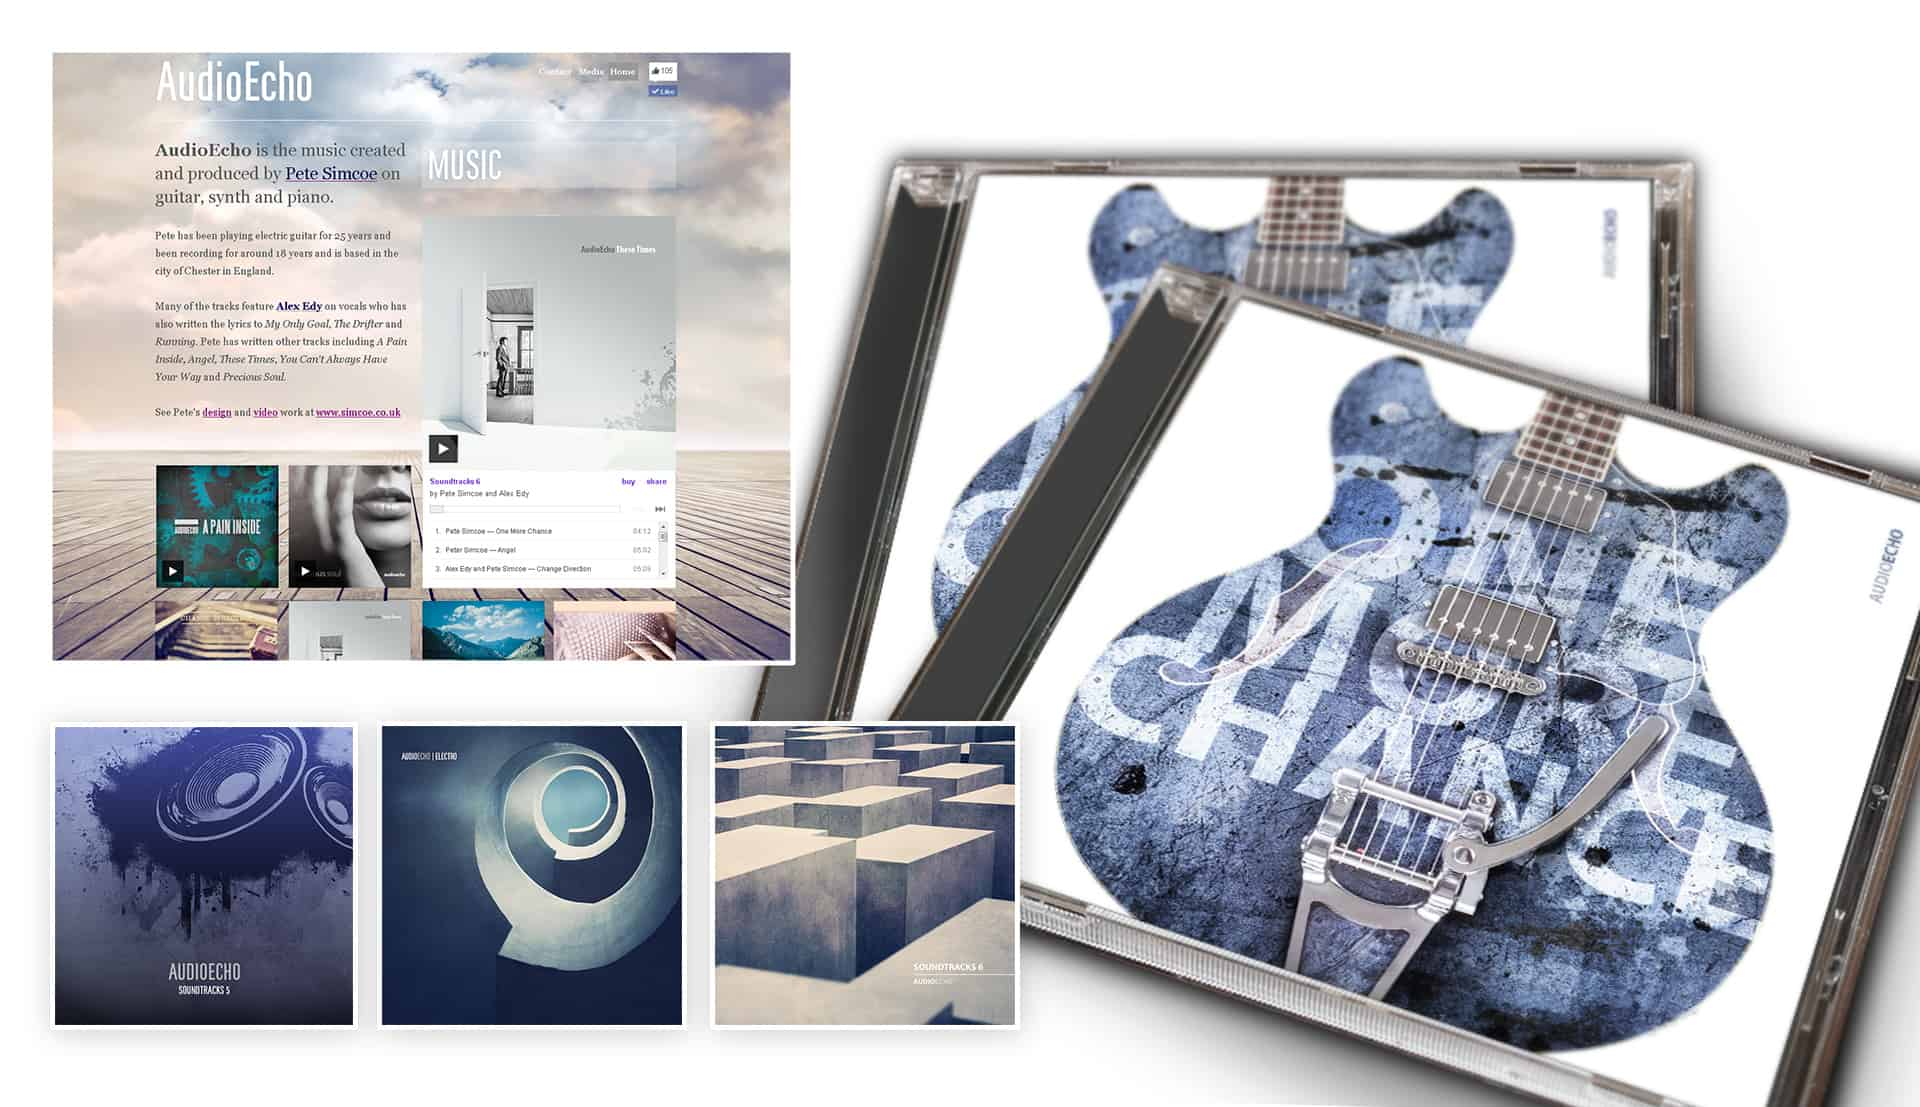 AudioEcho music artwork and website design